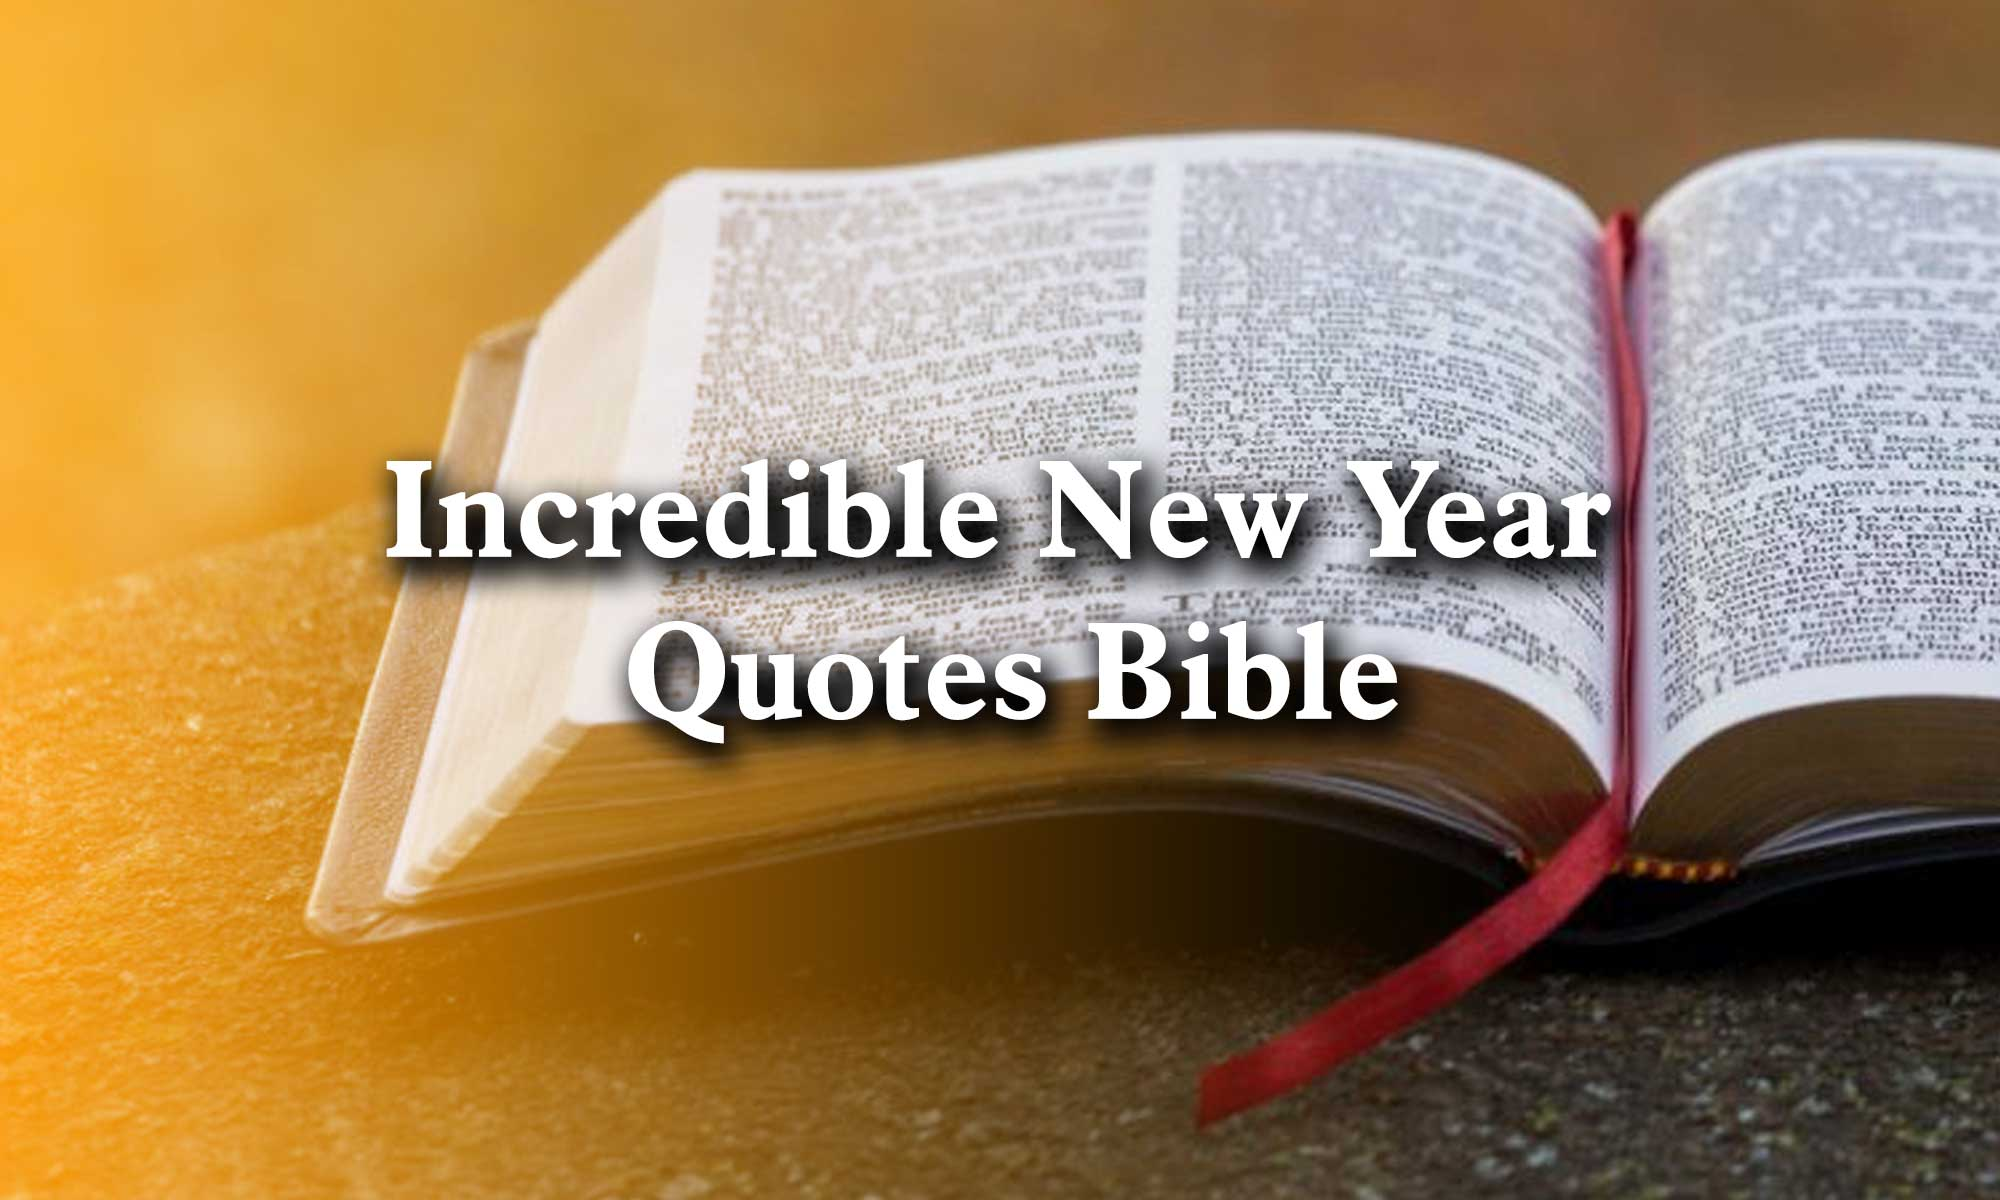 New Year Quotes Bible